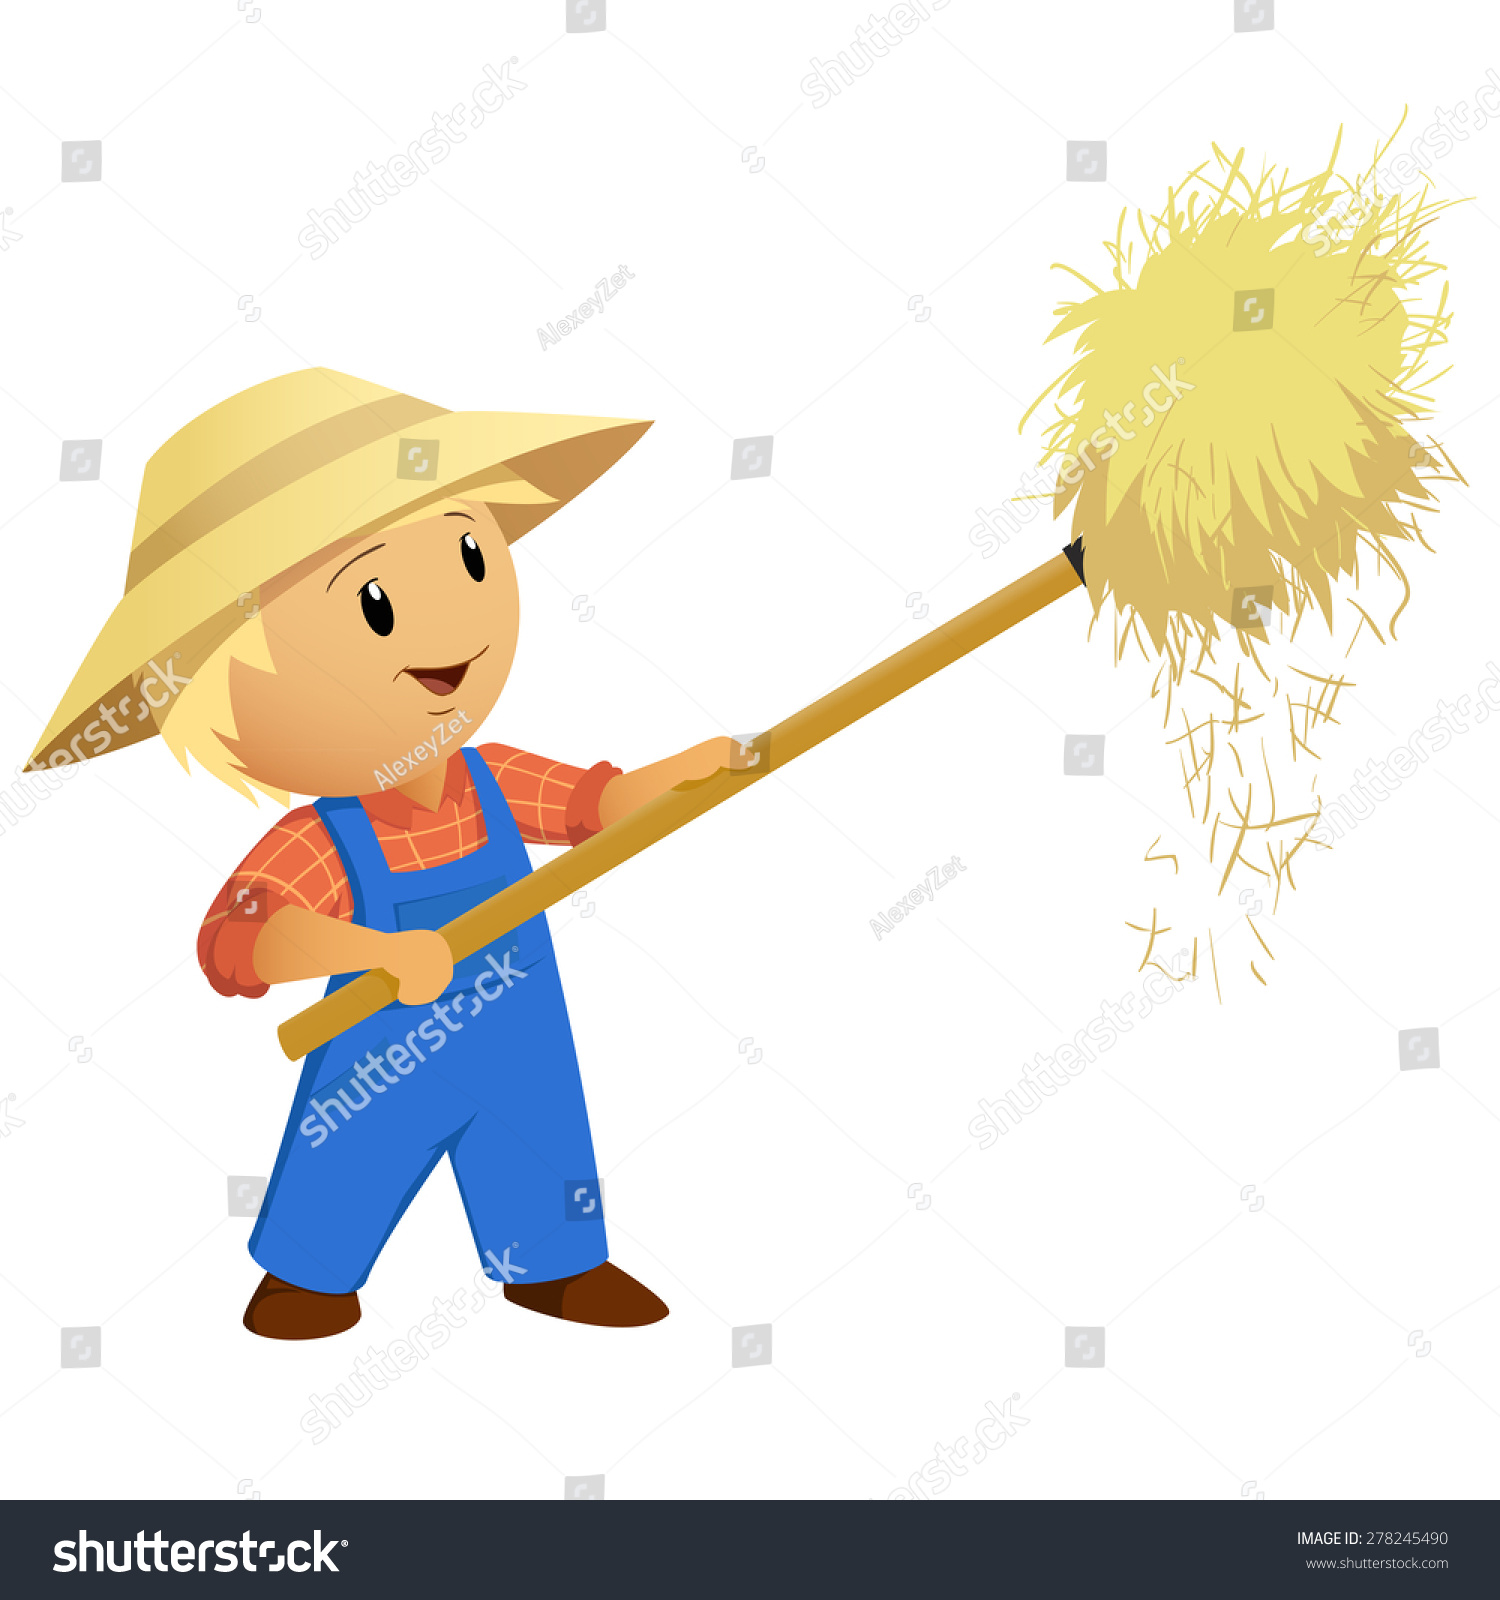 Hay Farmer Tractor Cartoon : Cartoon farmer hay hat pitchfork vector stock